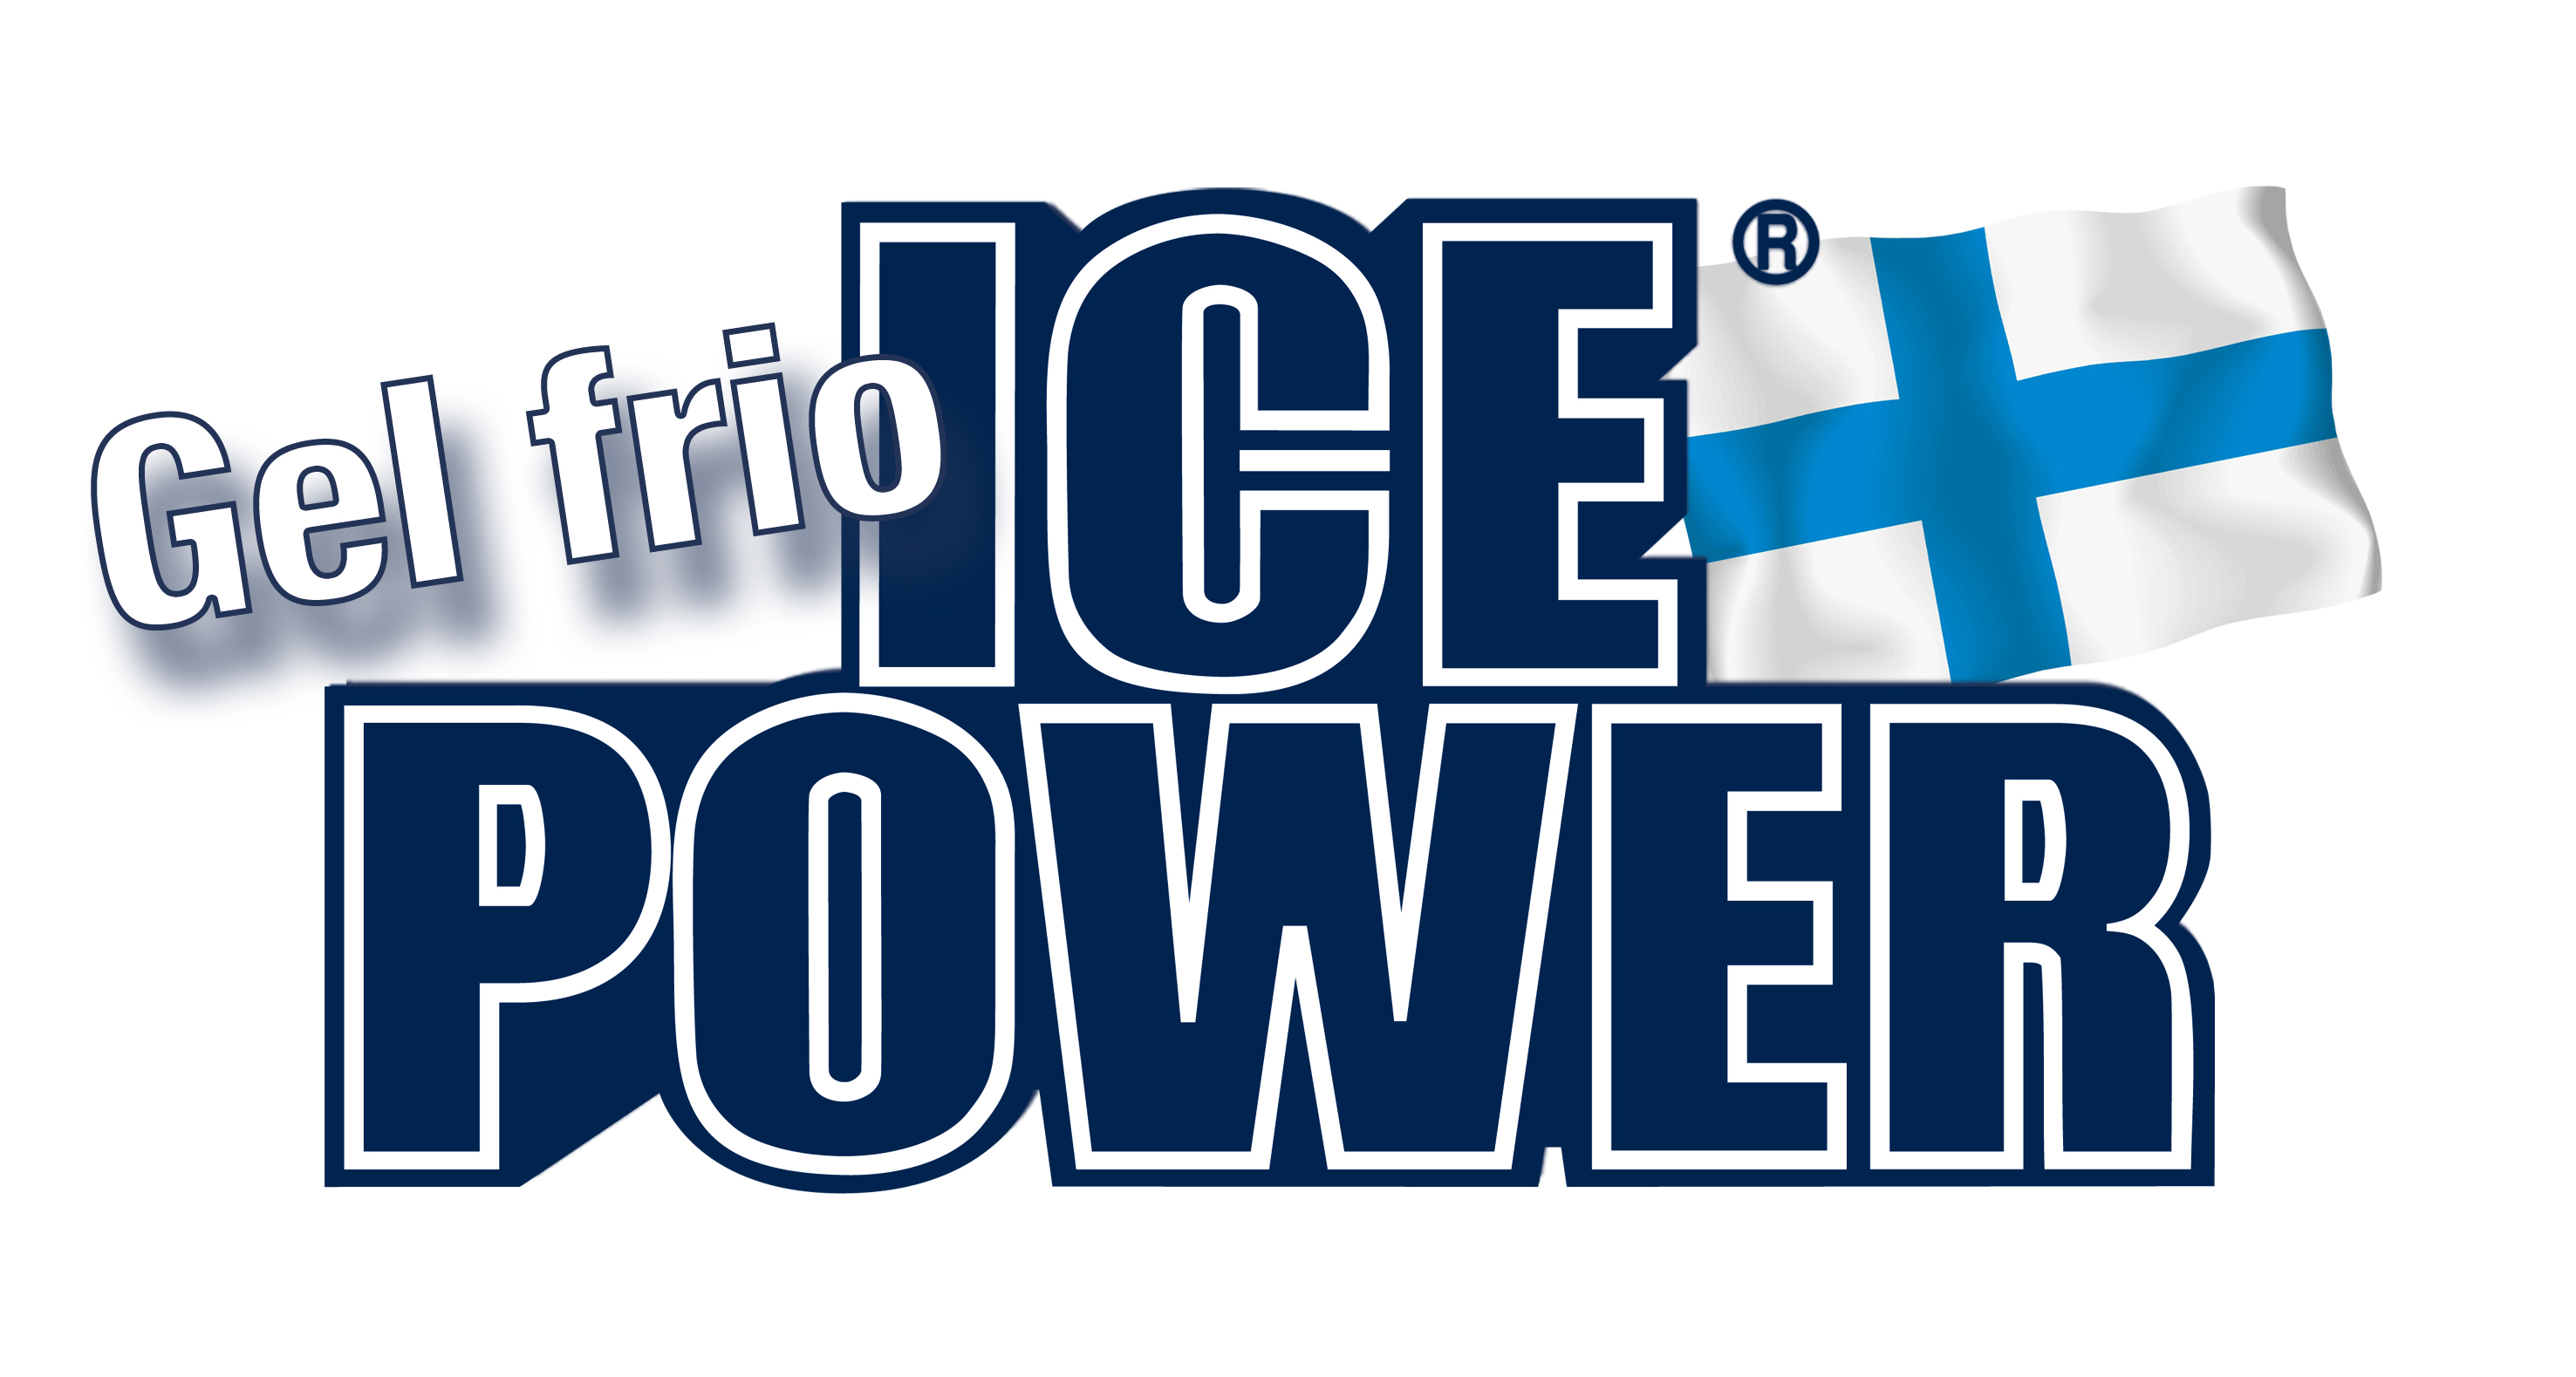 Gel frio ice power